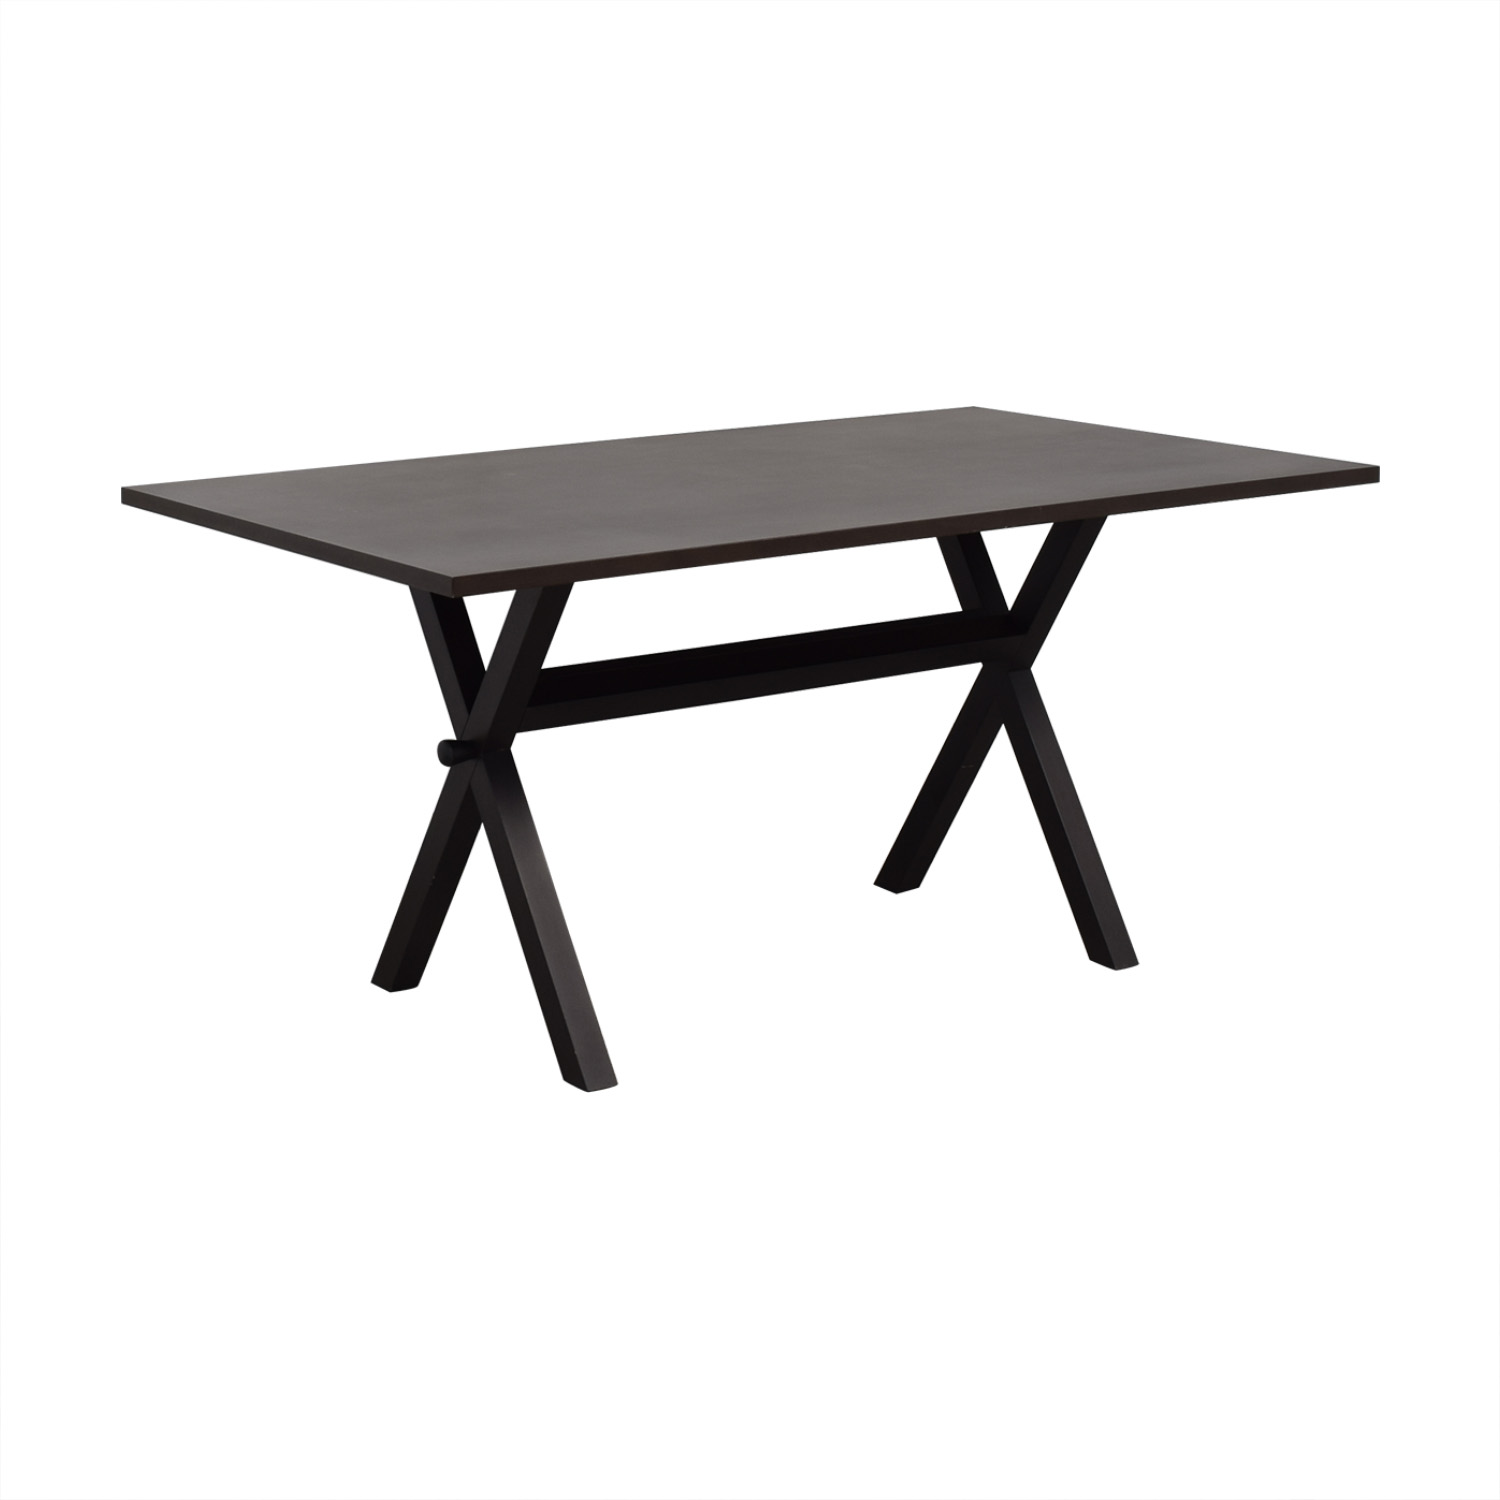 shop Design Within Reach Design Within Reach X-Base Dining Table online